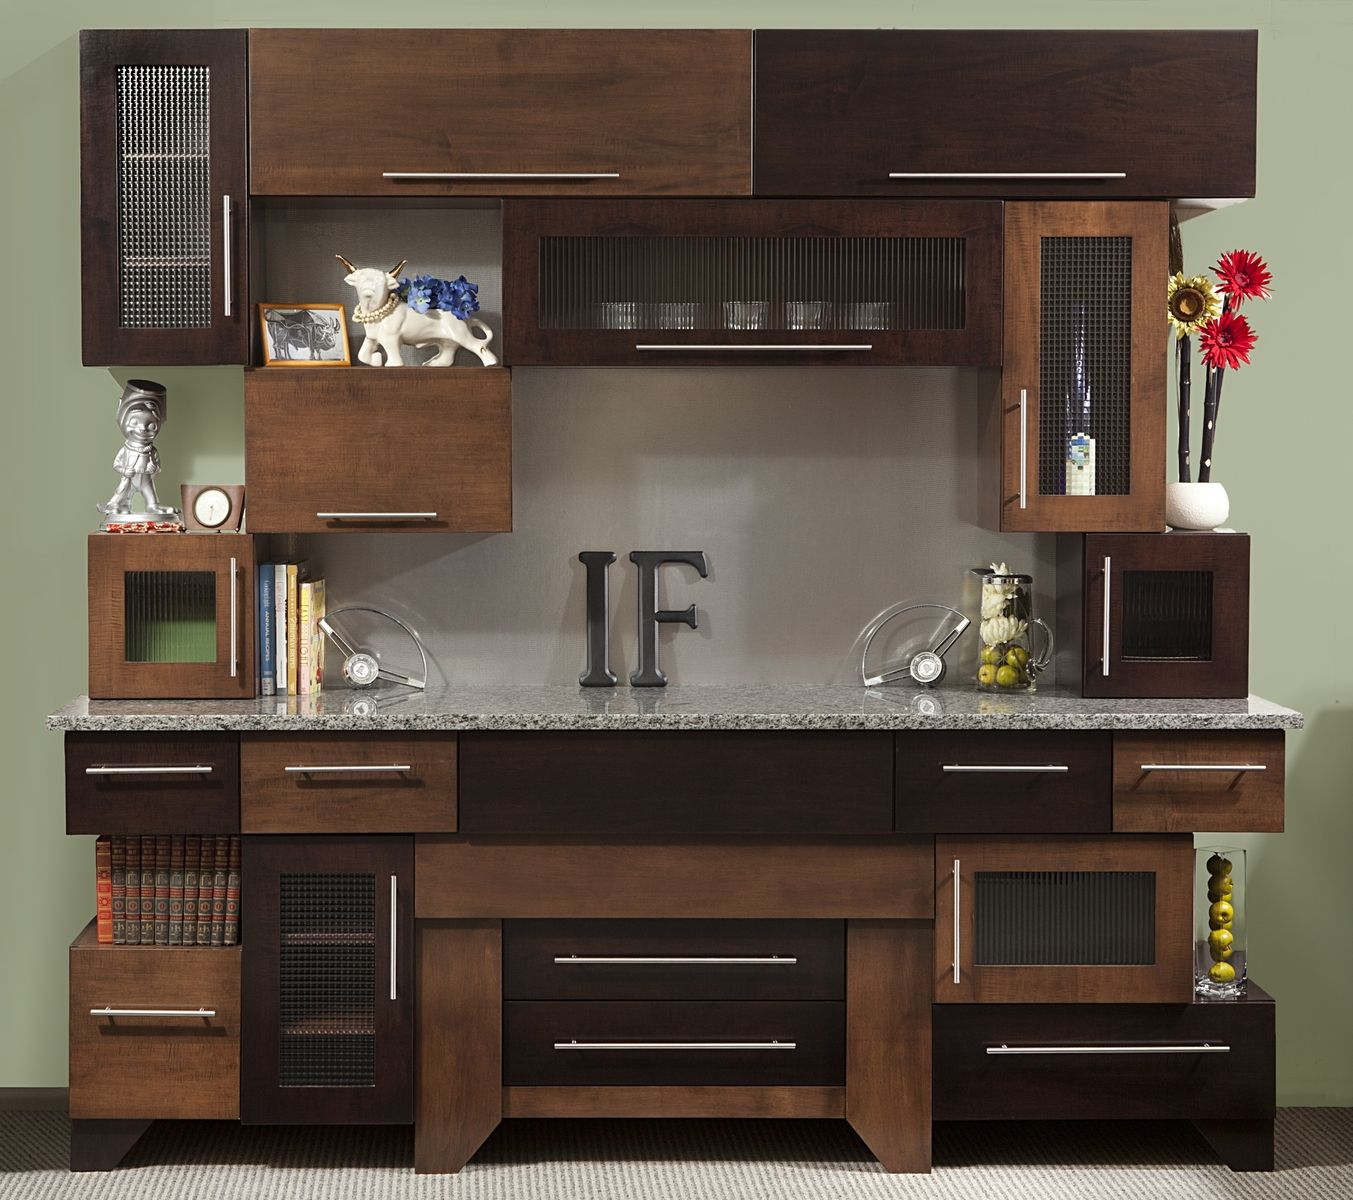 Hand Made Cubist Cabinets Kitchen Modern Clean In Tiger